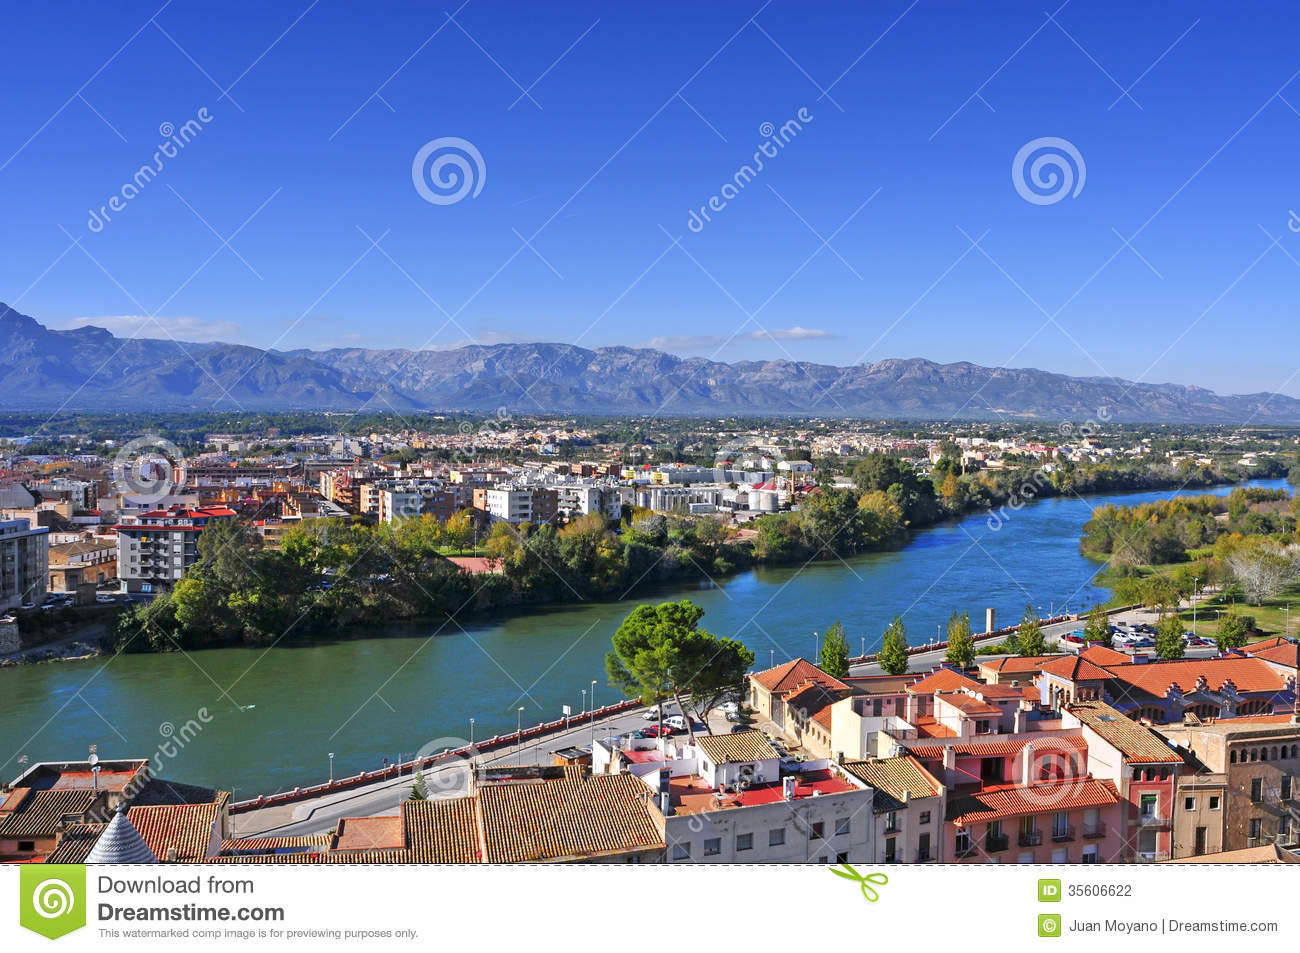 Tortosa Spain  city images : view of Tortosa, Spain, and Ebro River, with the Ports of Tortosa ...